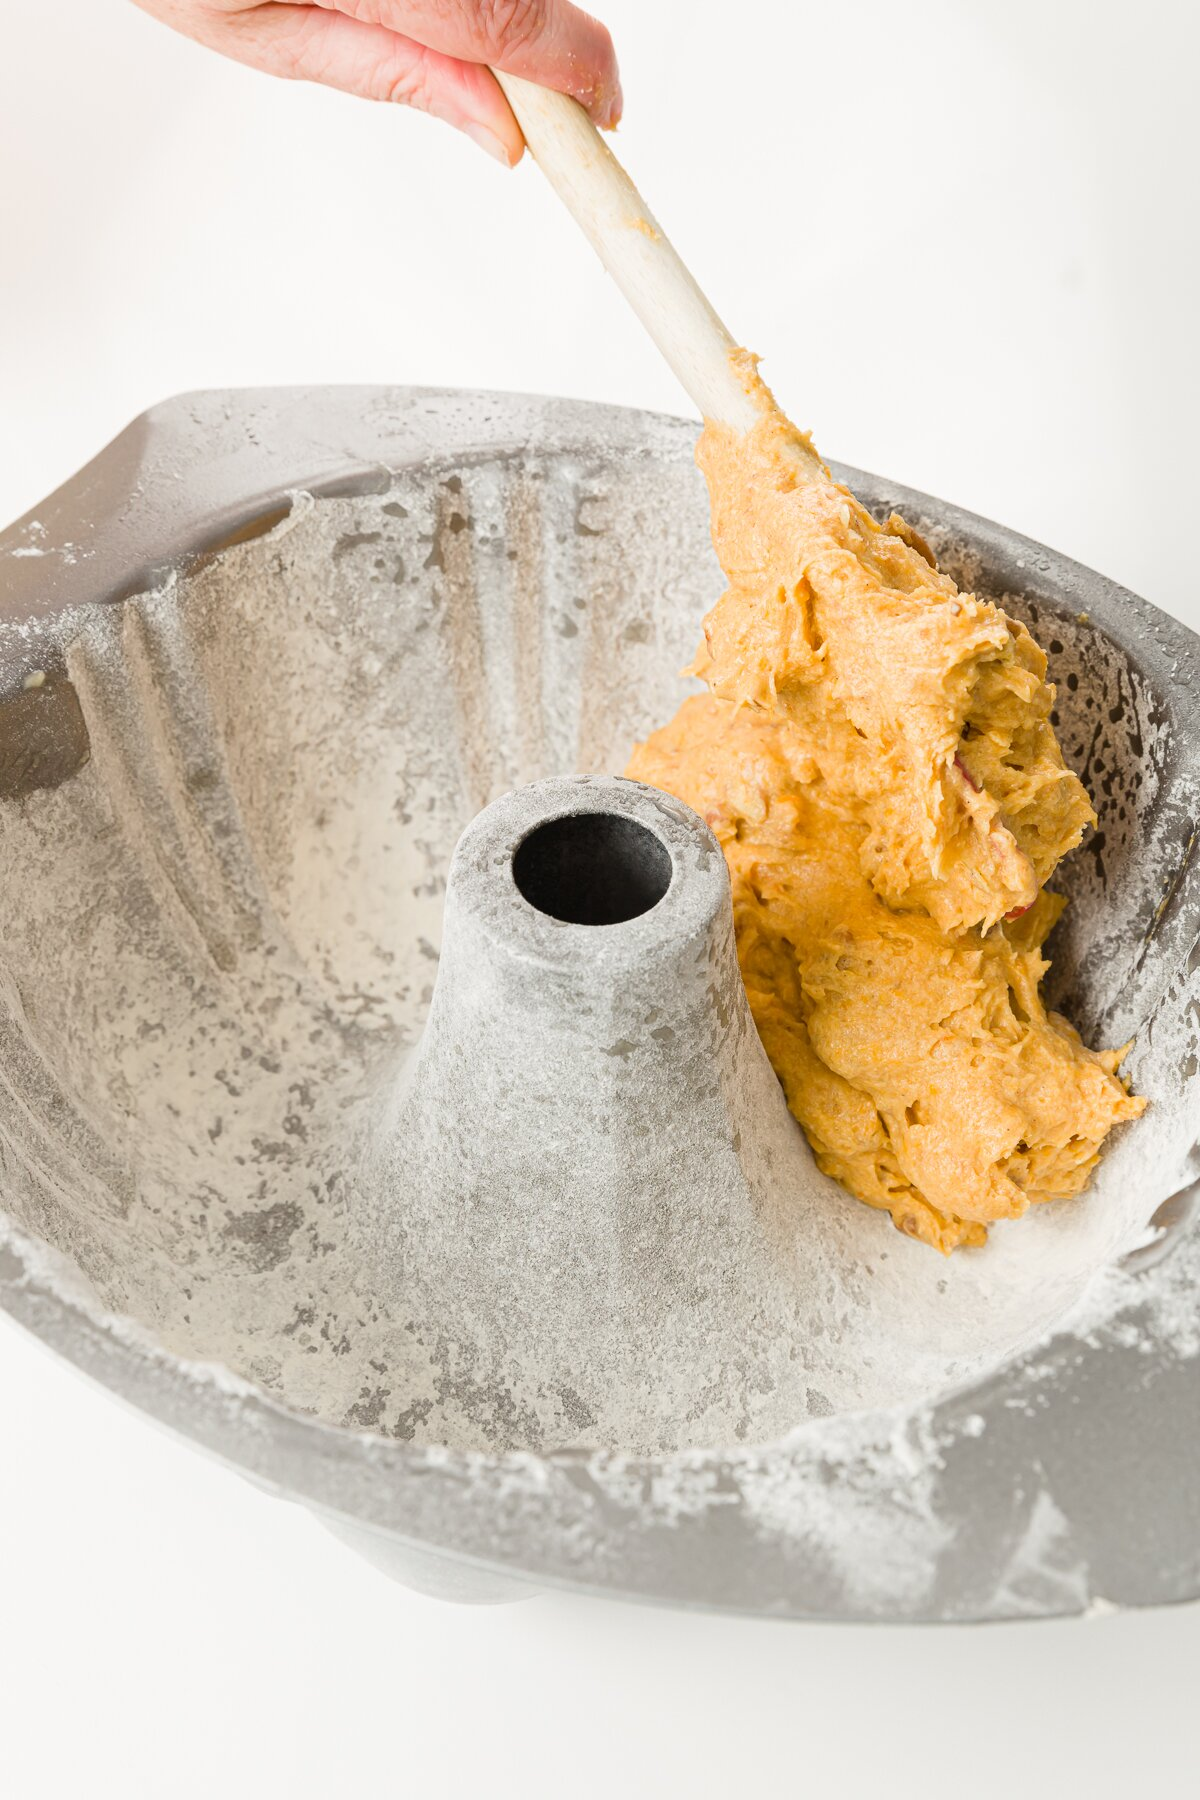 Filling a greased and floured Bundt pan with batter